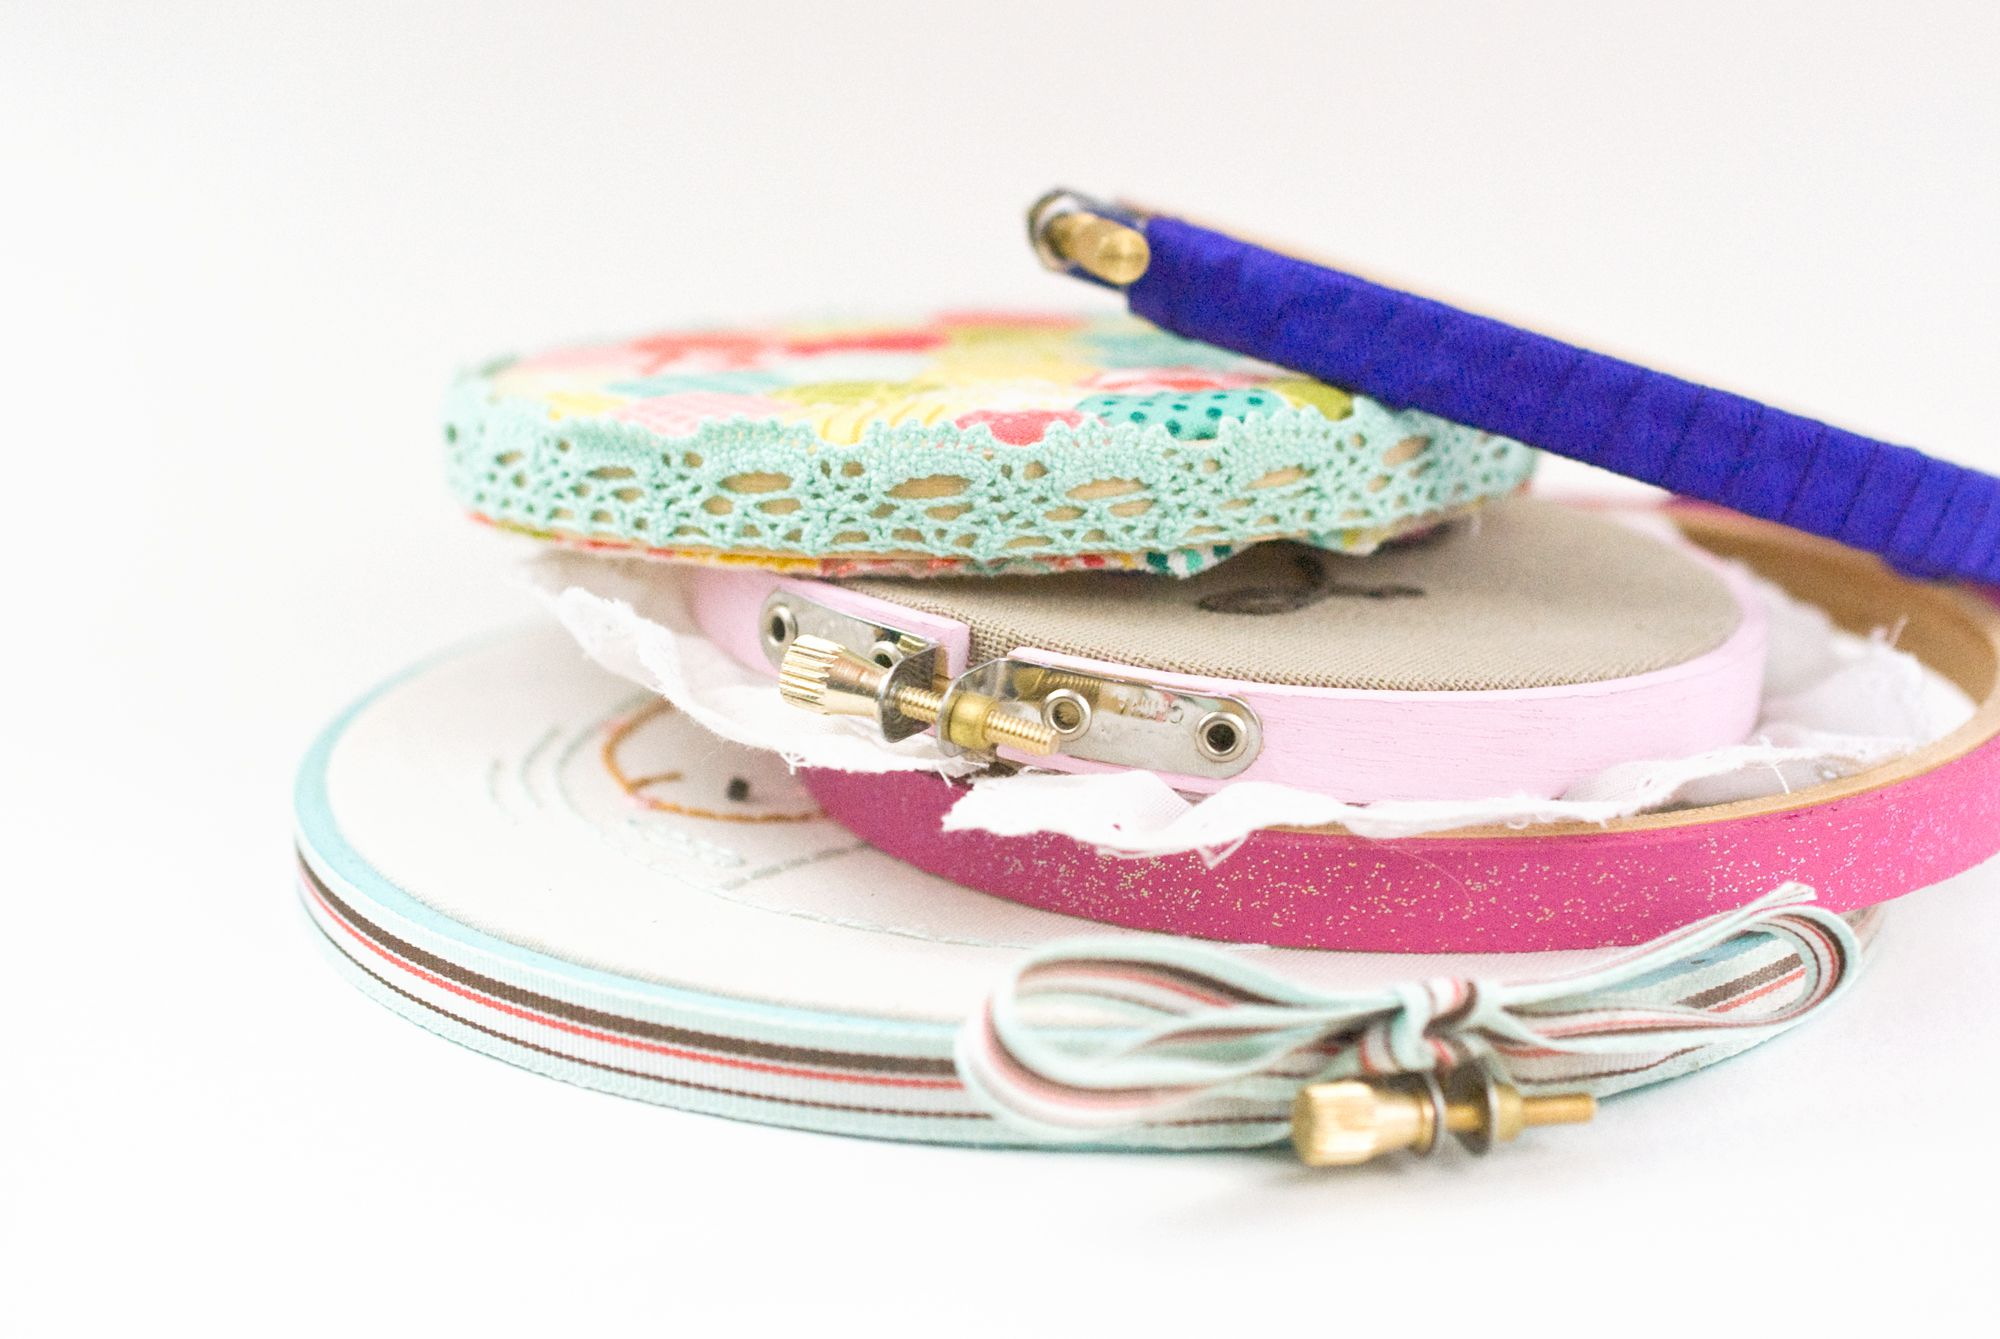 Ways to embellish your embroidery hoops